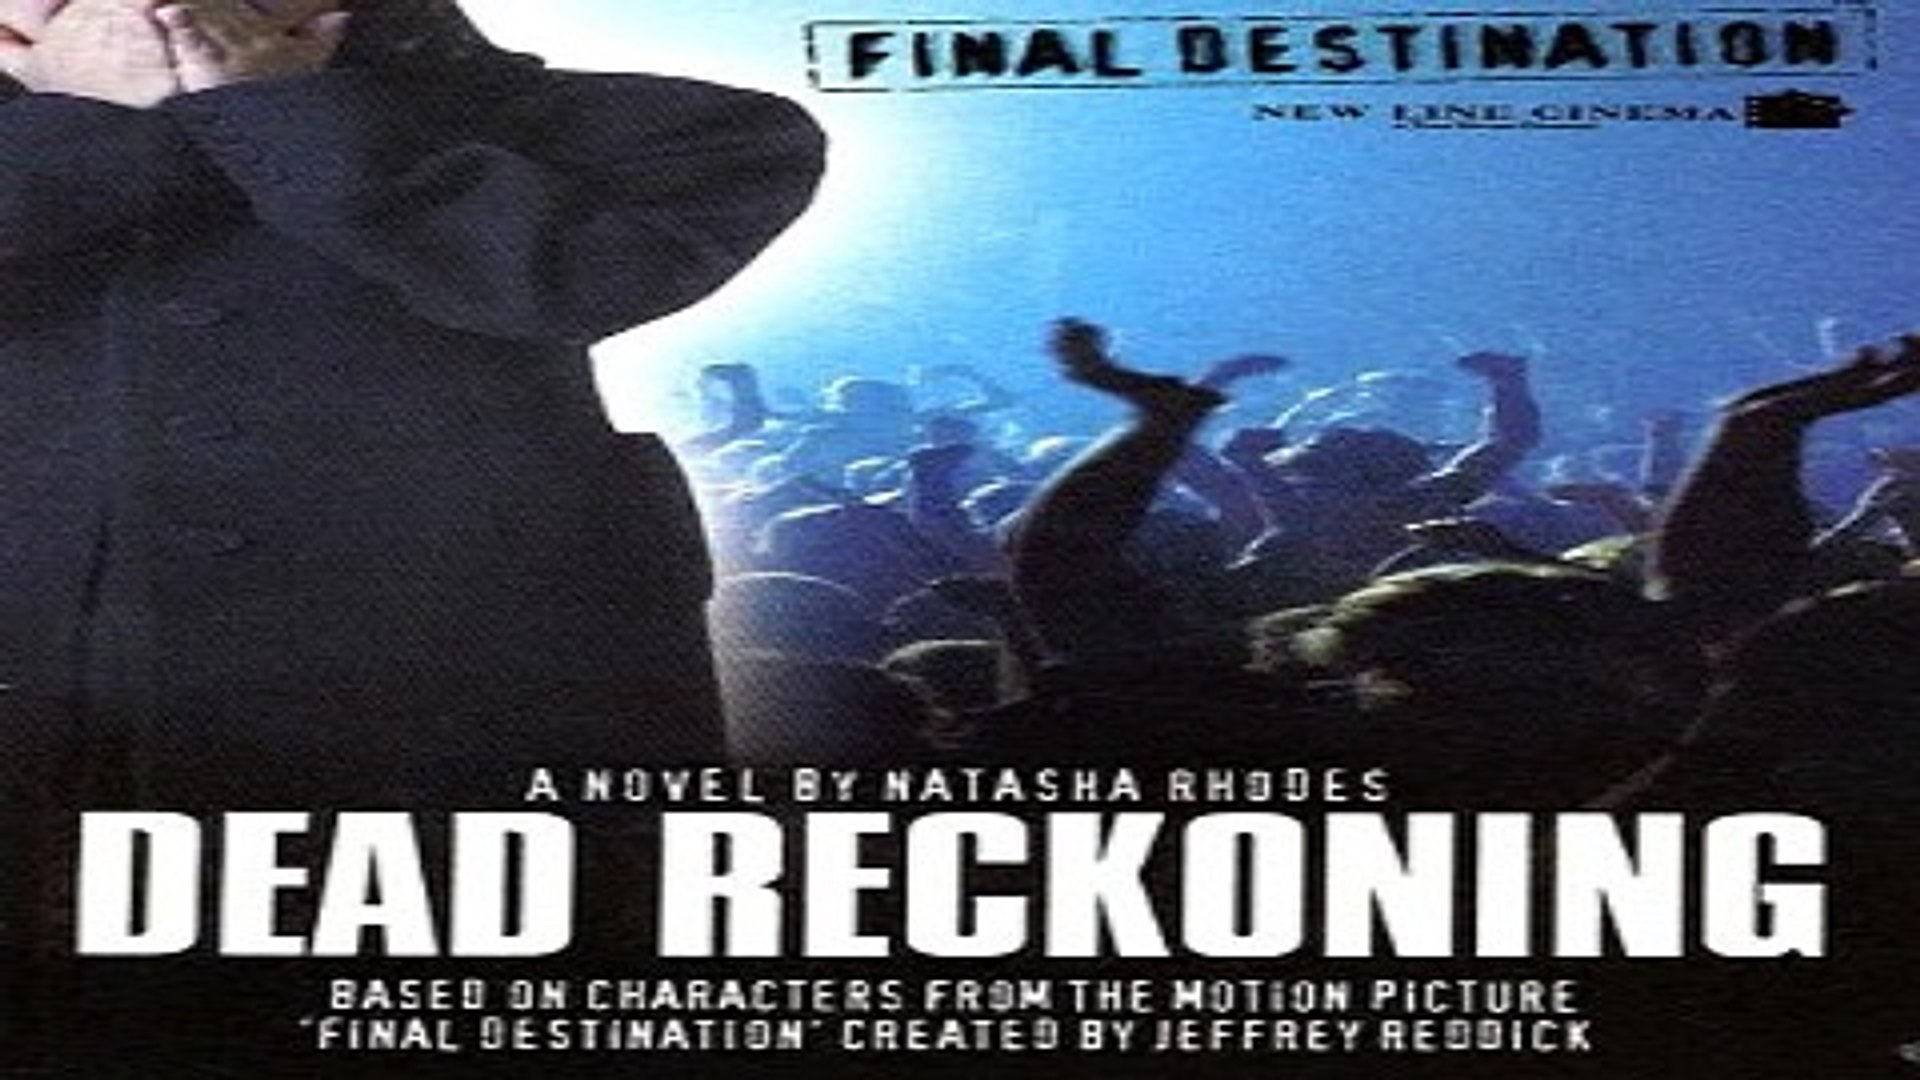 Download Final Destination 1 Dead Reckoning